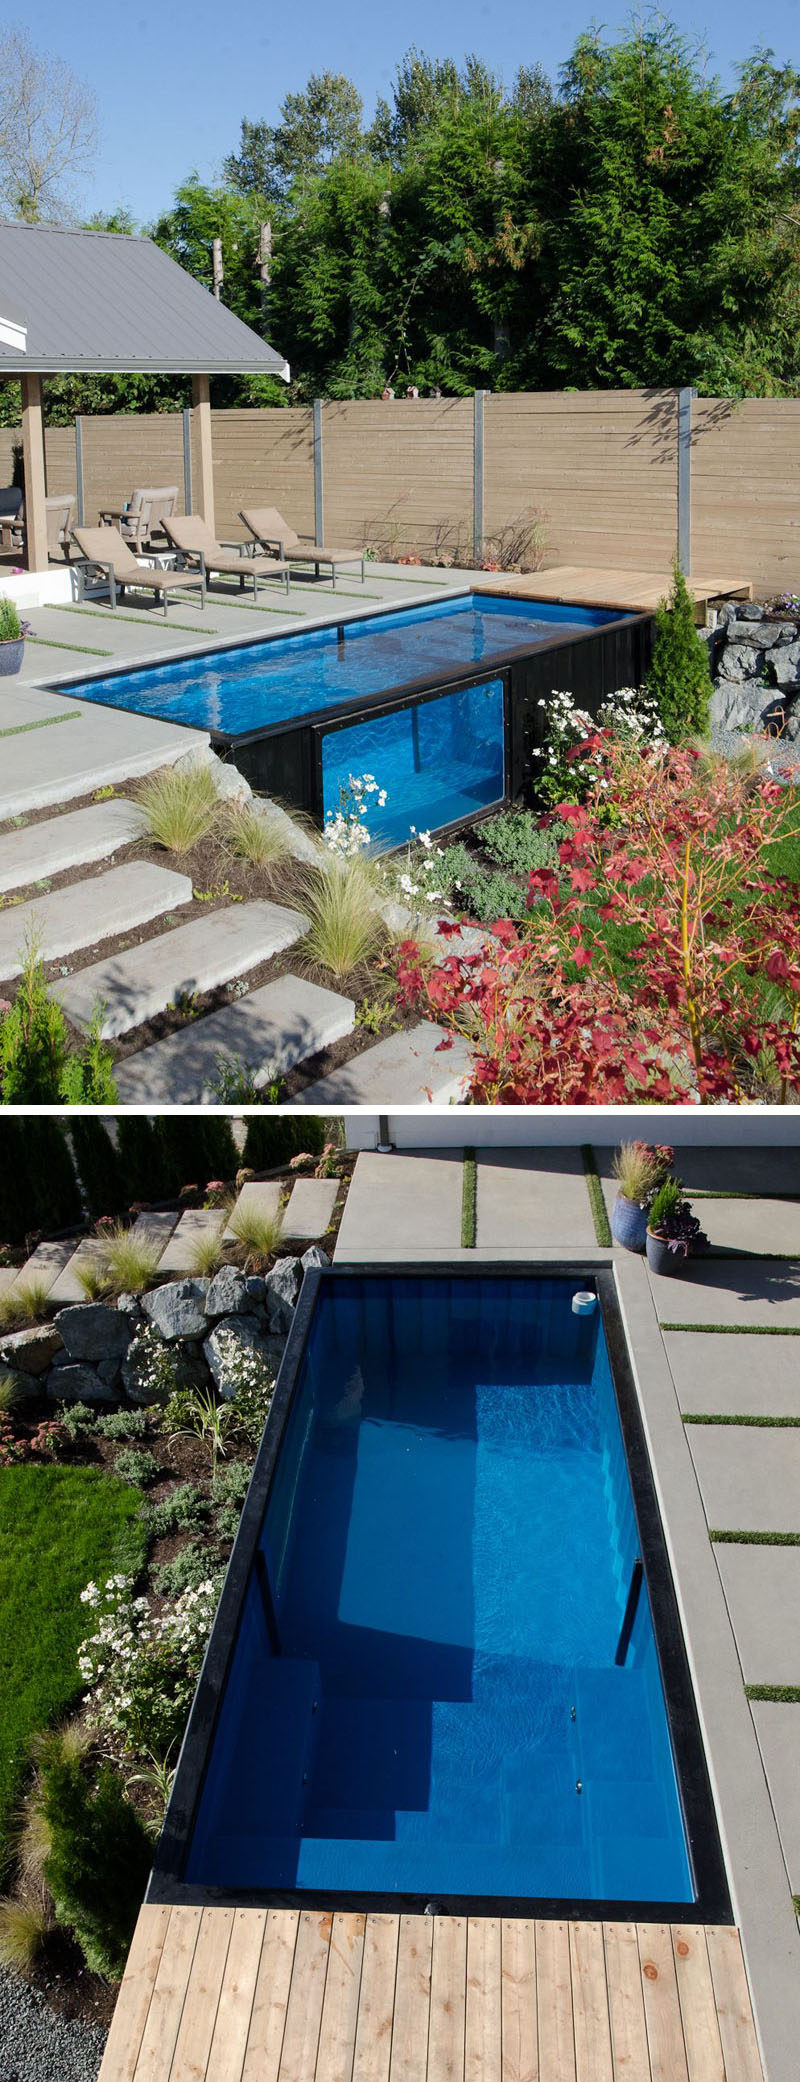 A Swimming Pool Made From A Shipping Container? This House ...